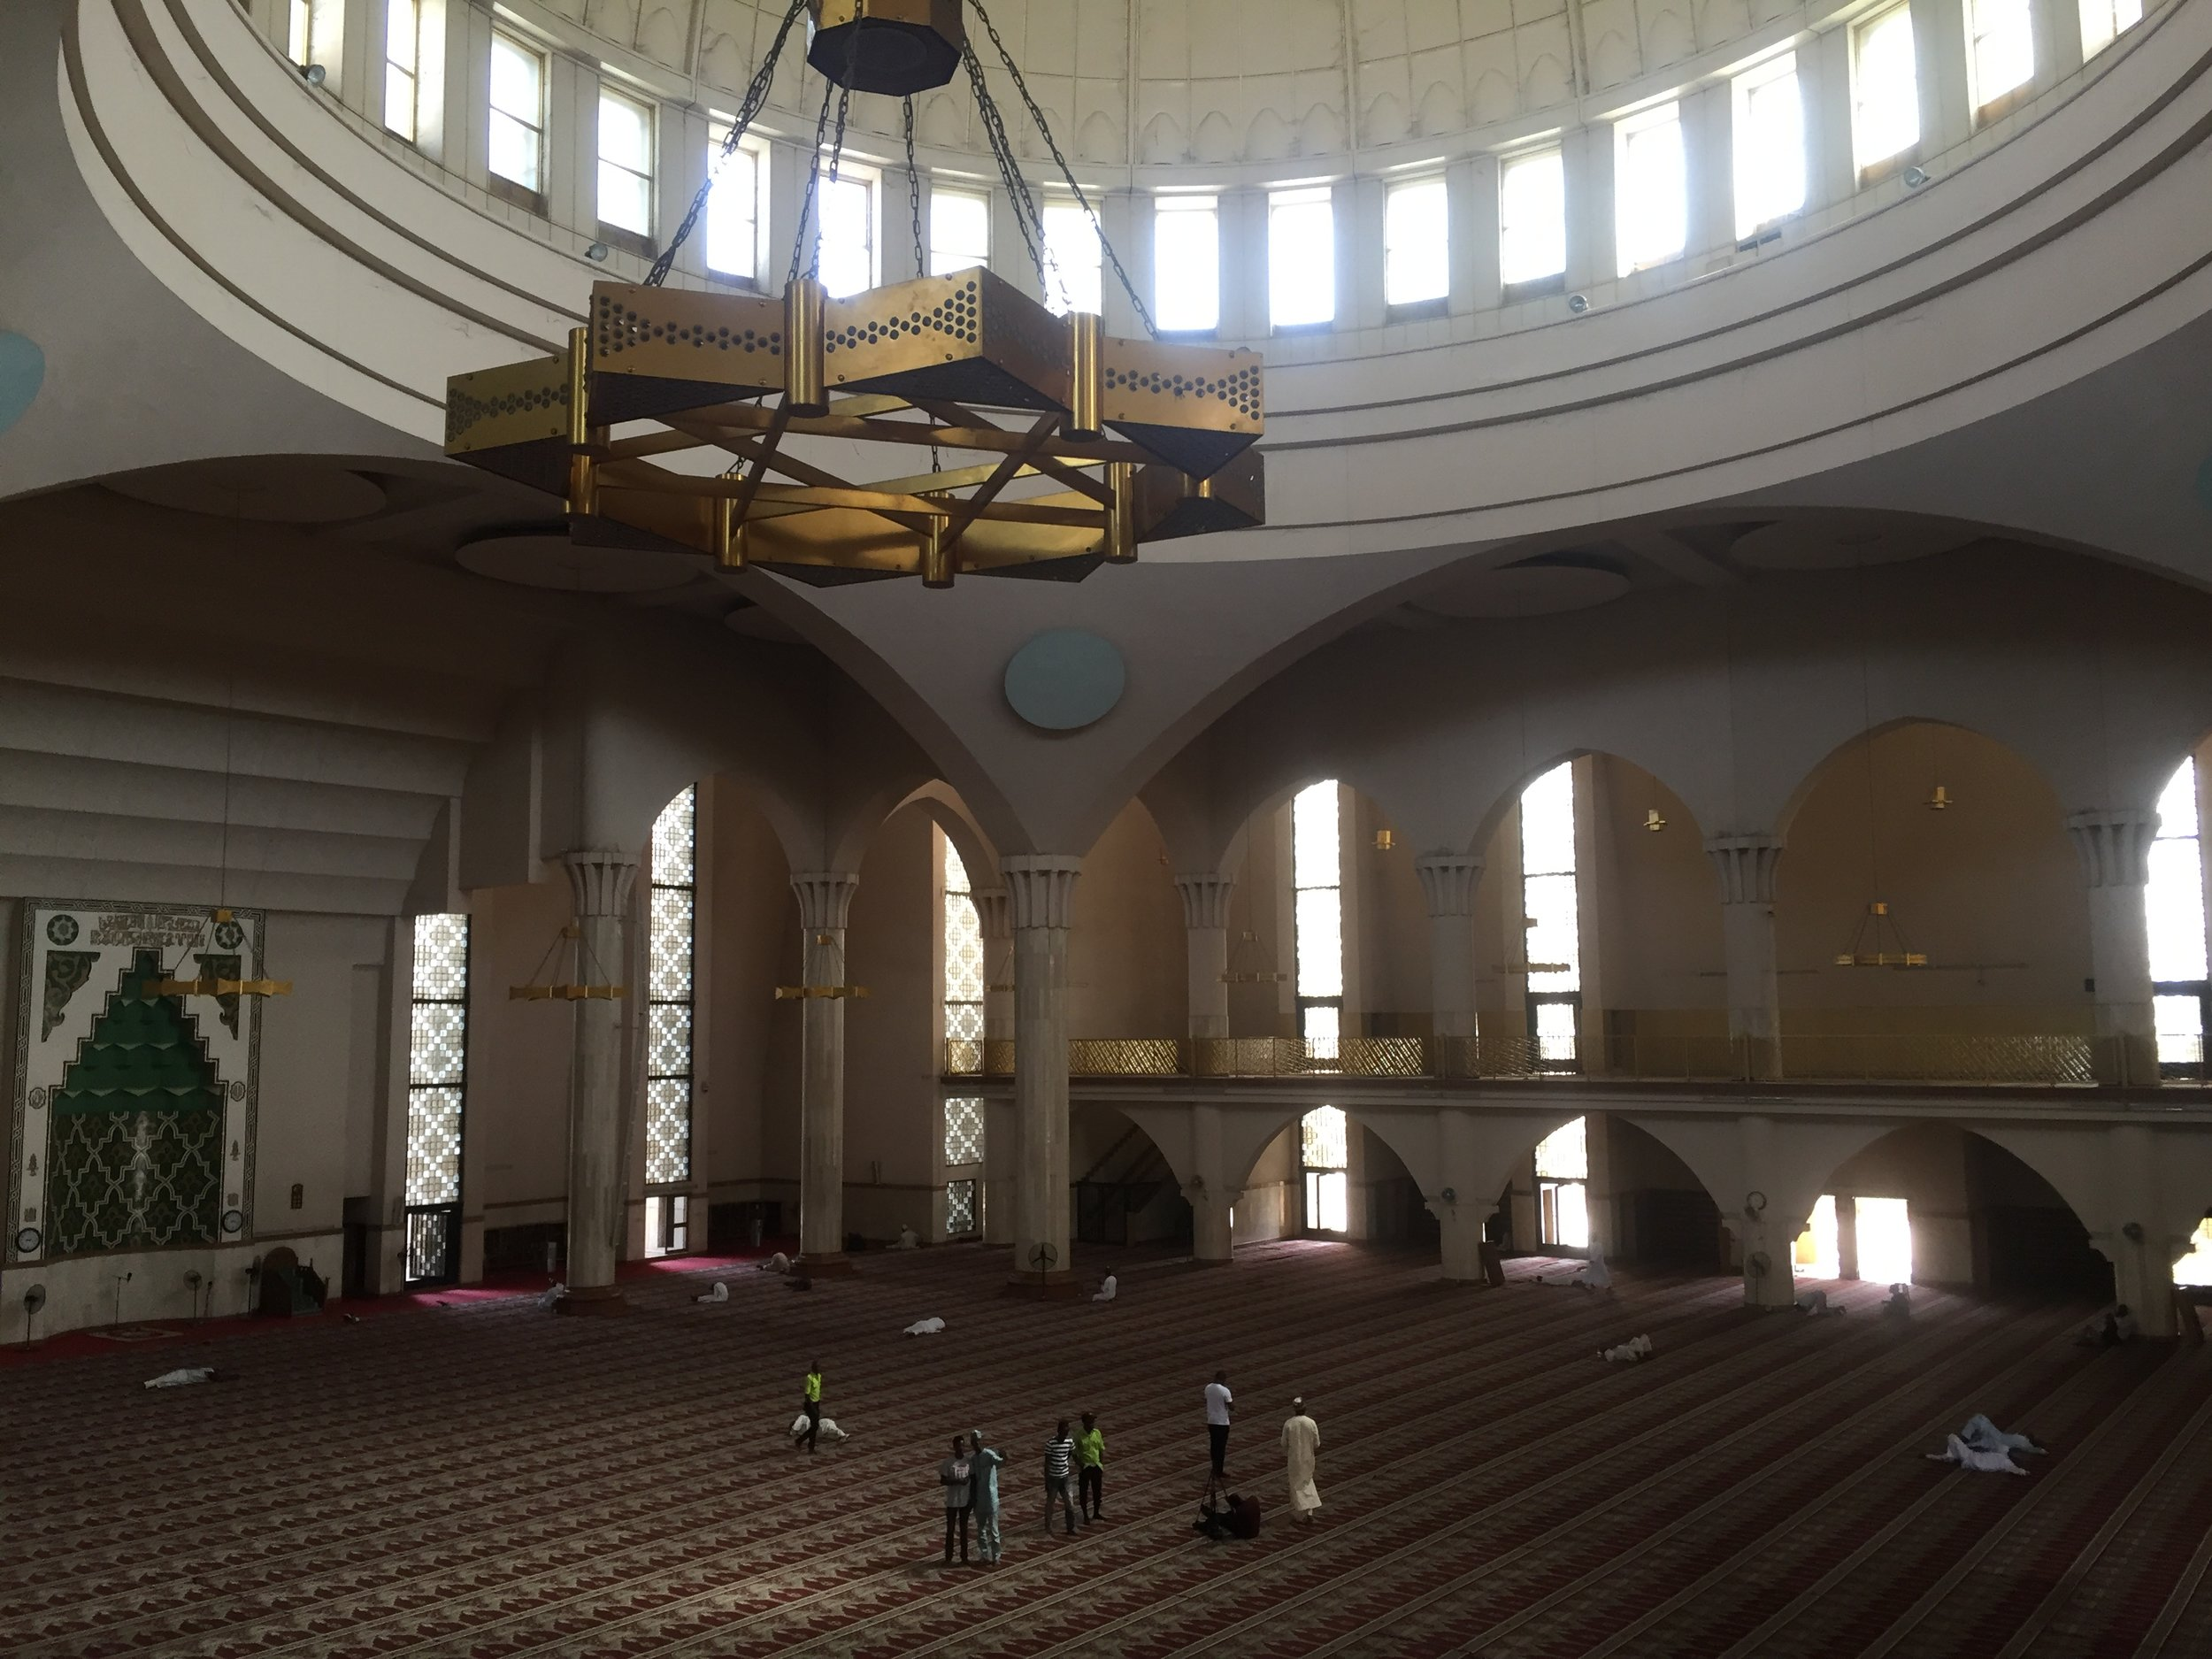 The Interior. Below is the prayer area for the men